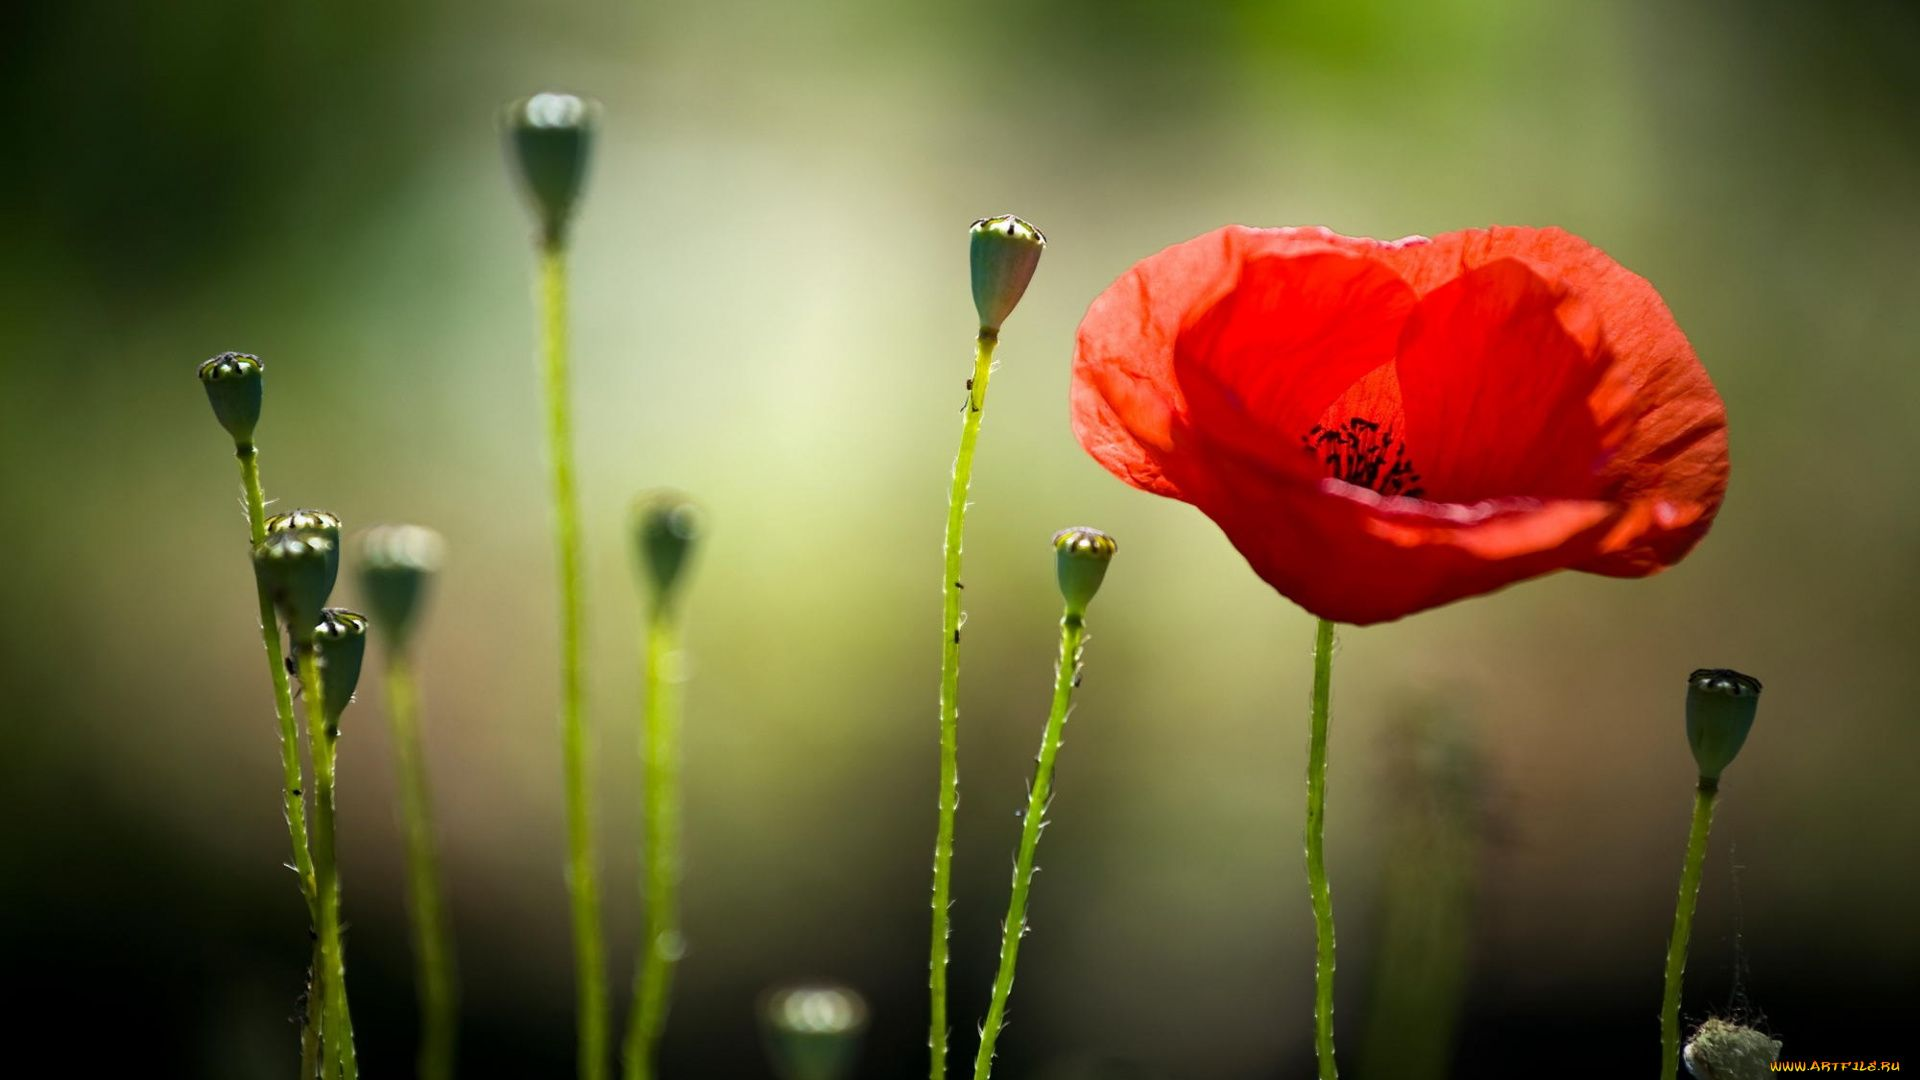 Poppy download free wallpapers for pc in hd